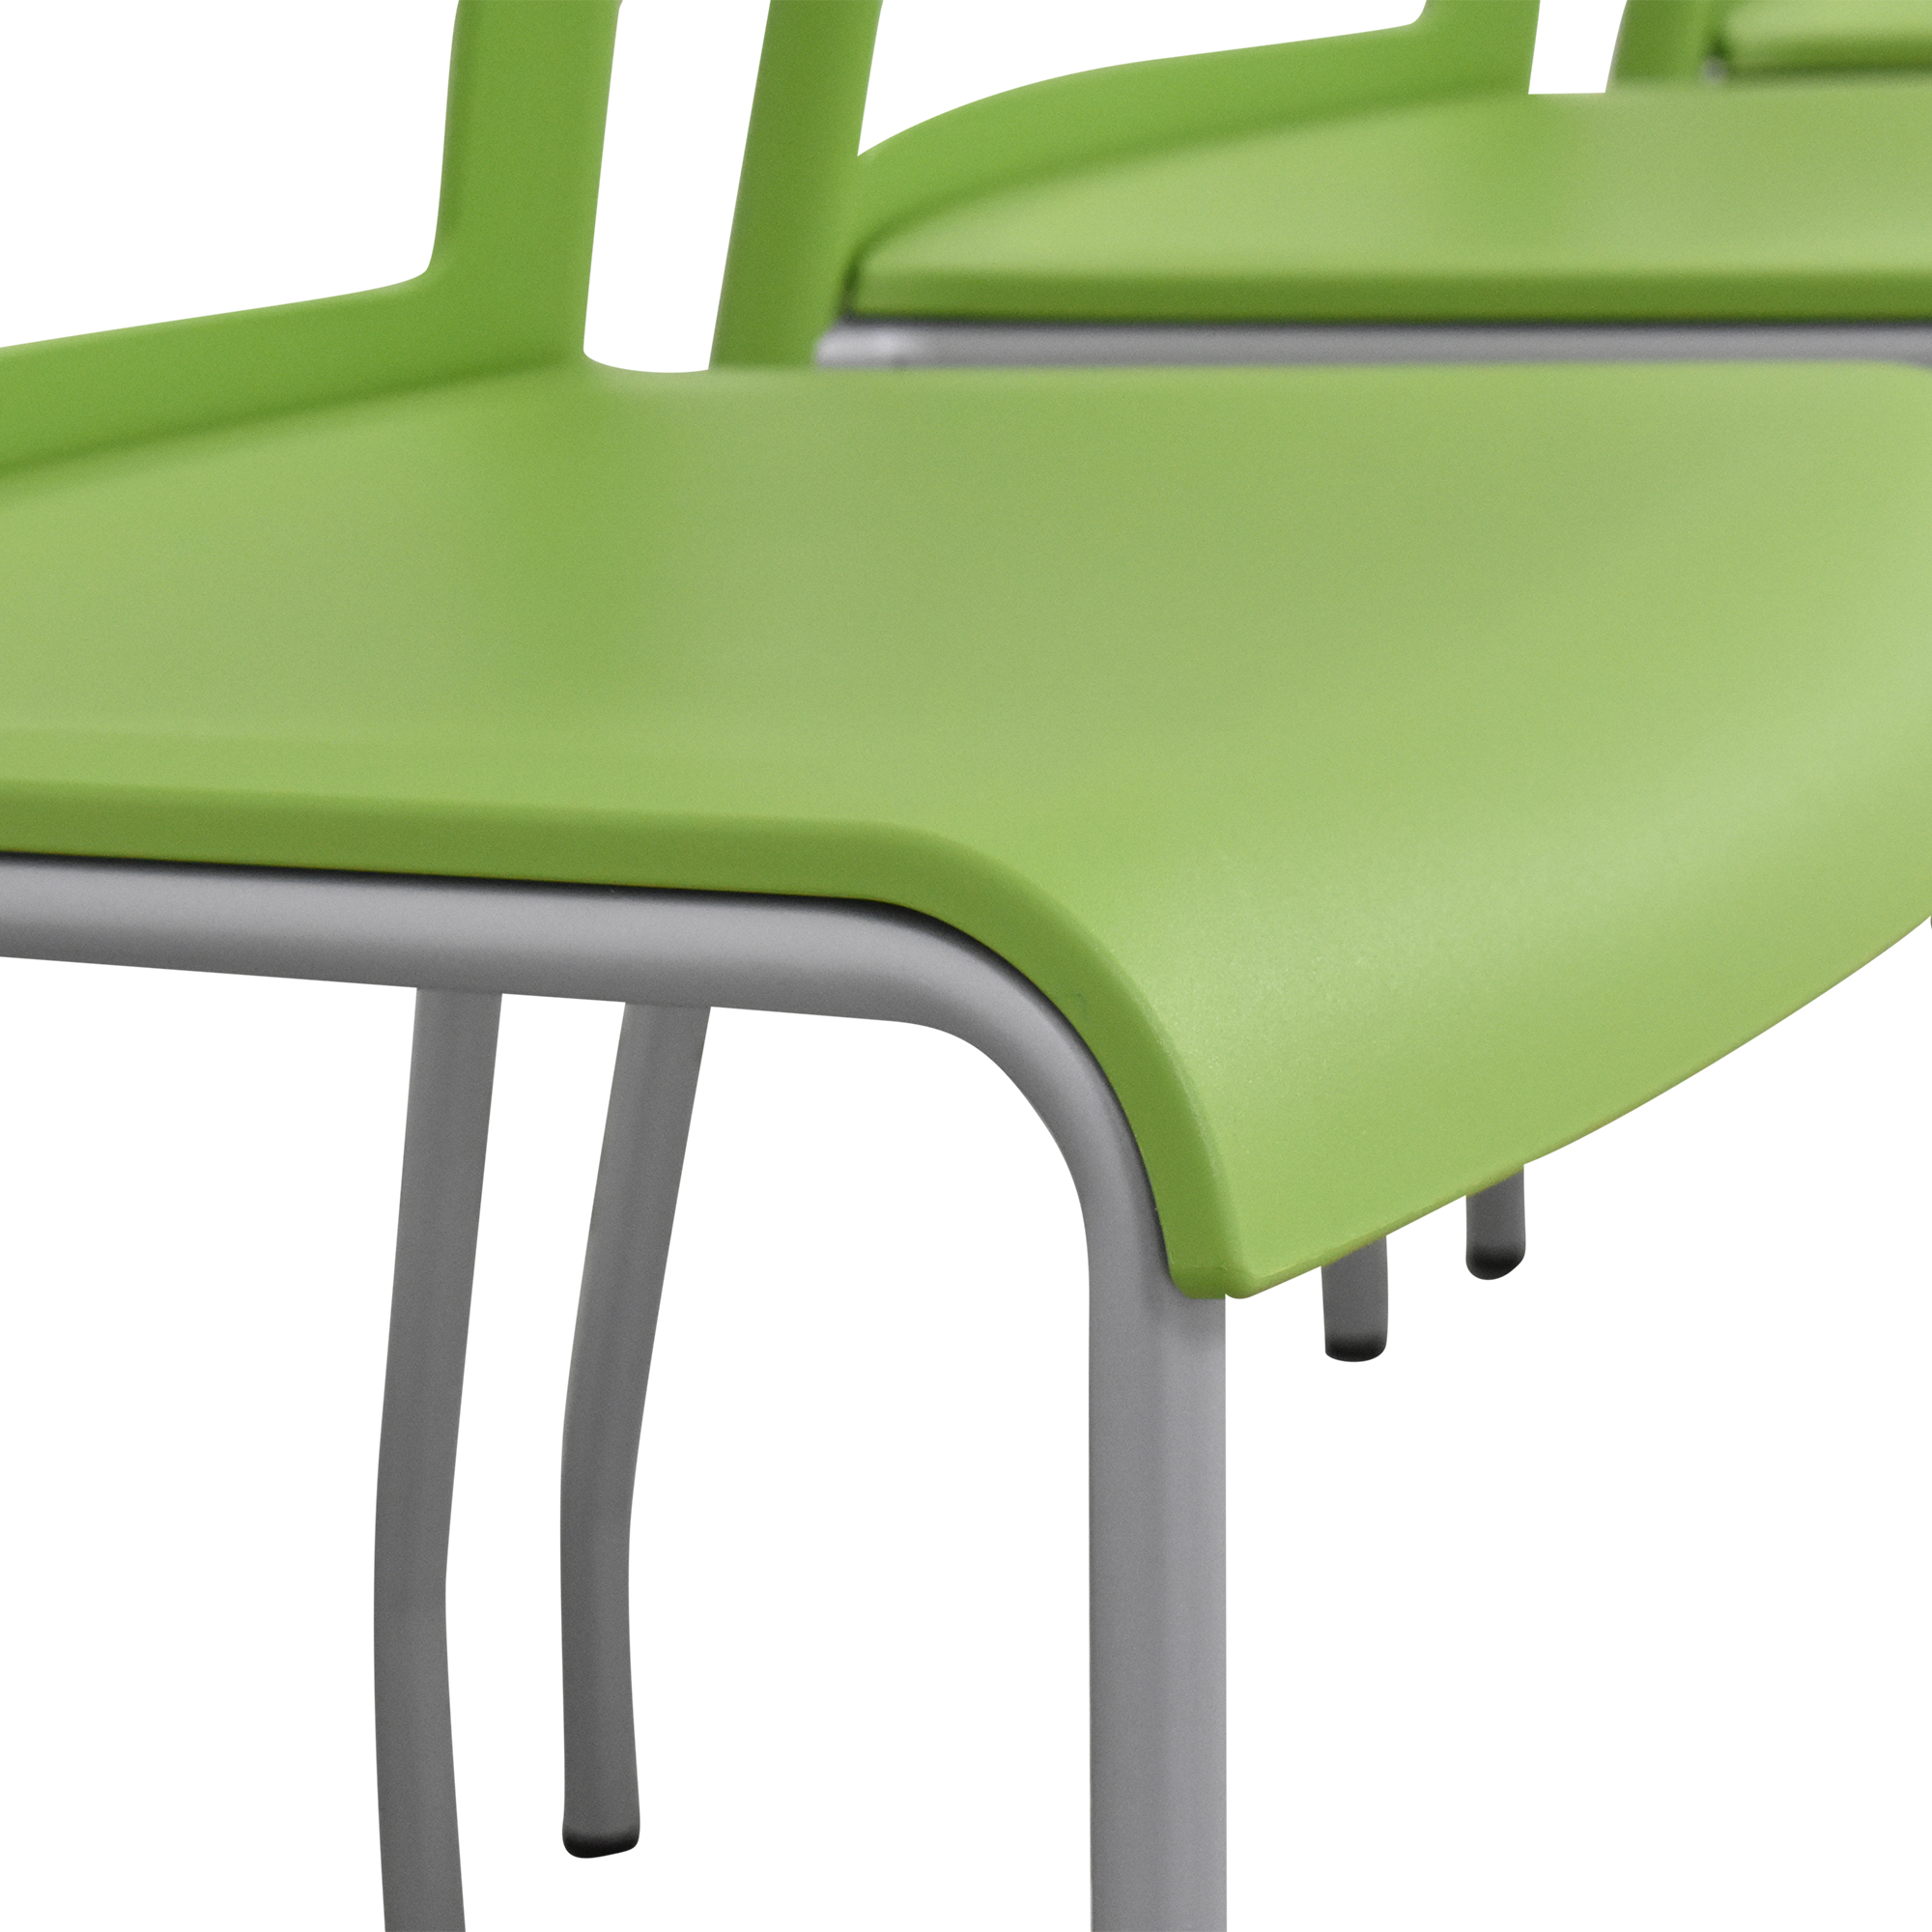 Steelcase Steelcase Move Stackable Chairs dimensions